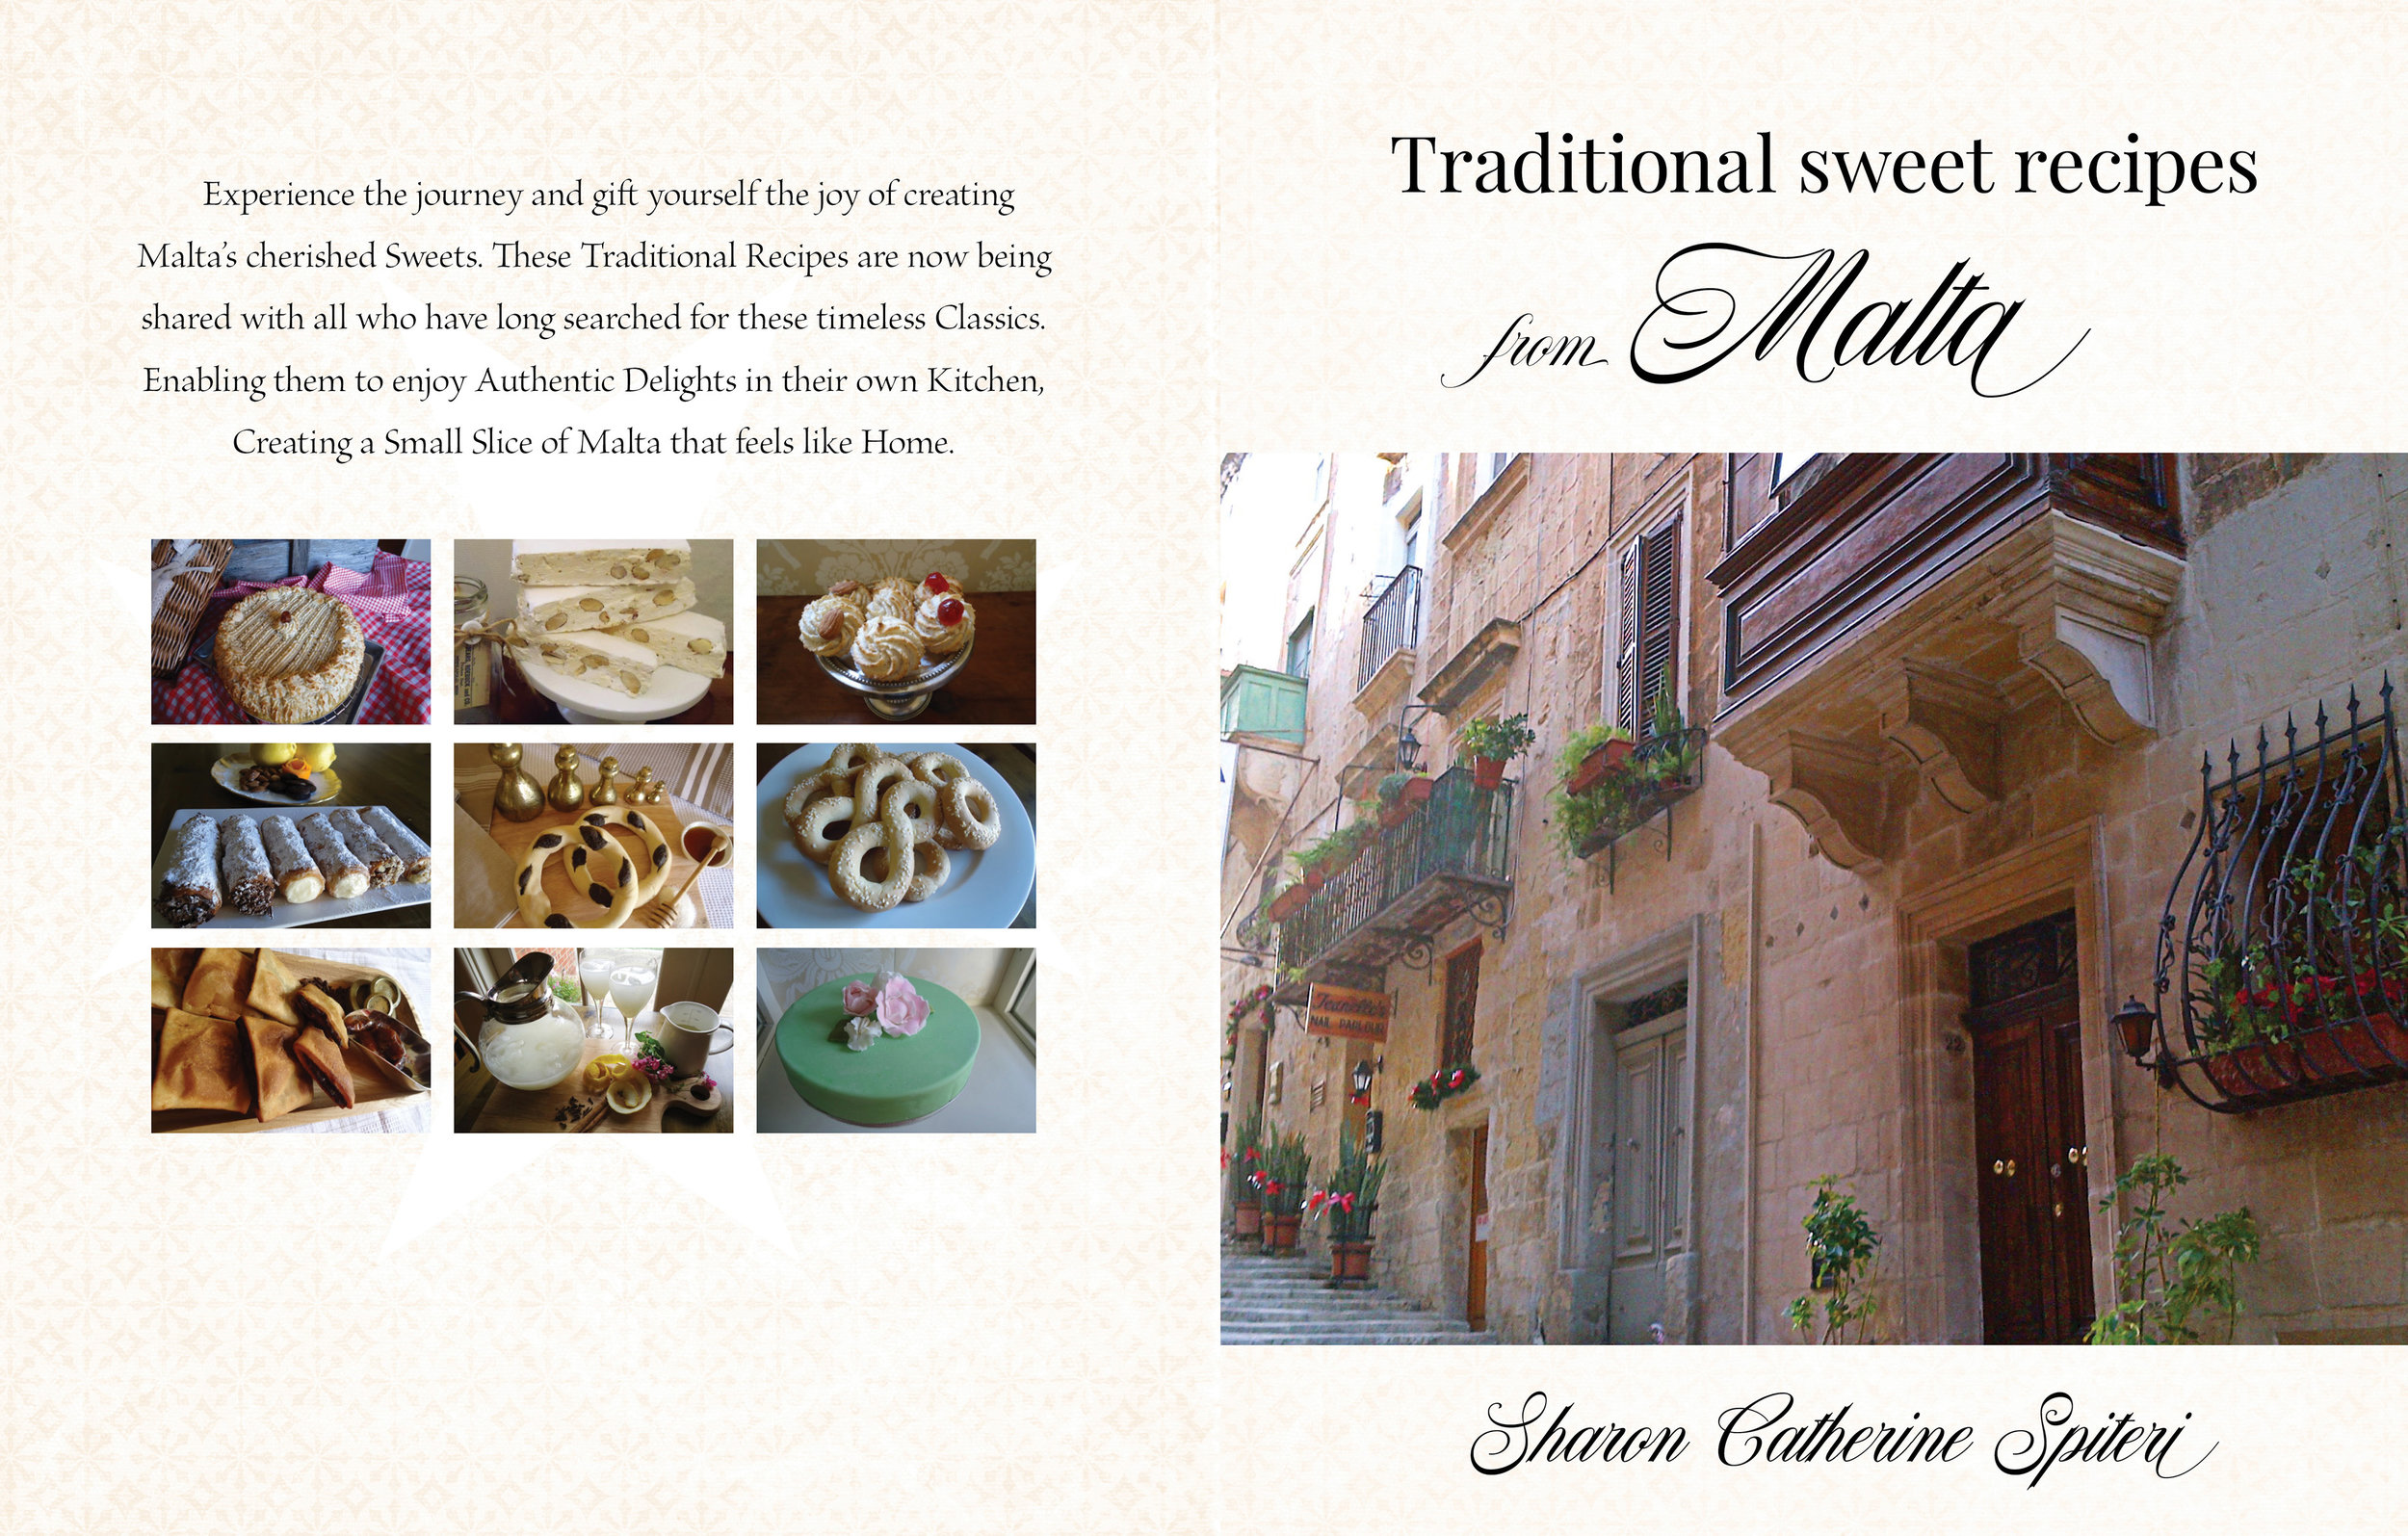 Traditional Sweet Recipes from Malta cover_01.jpg